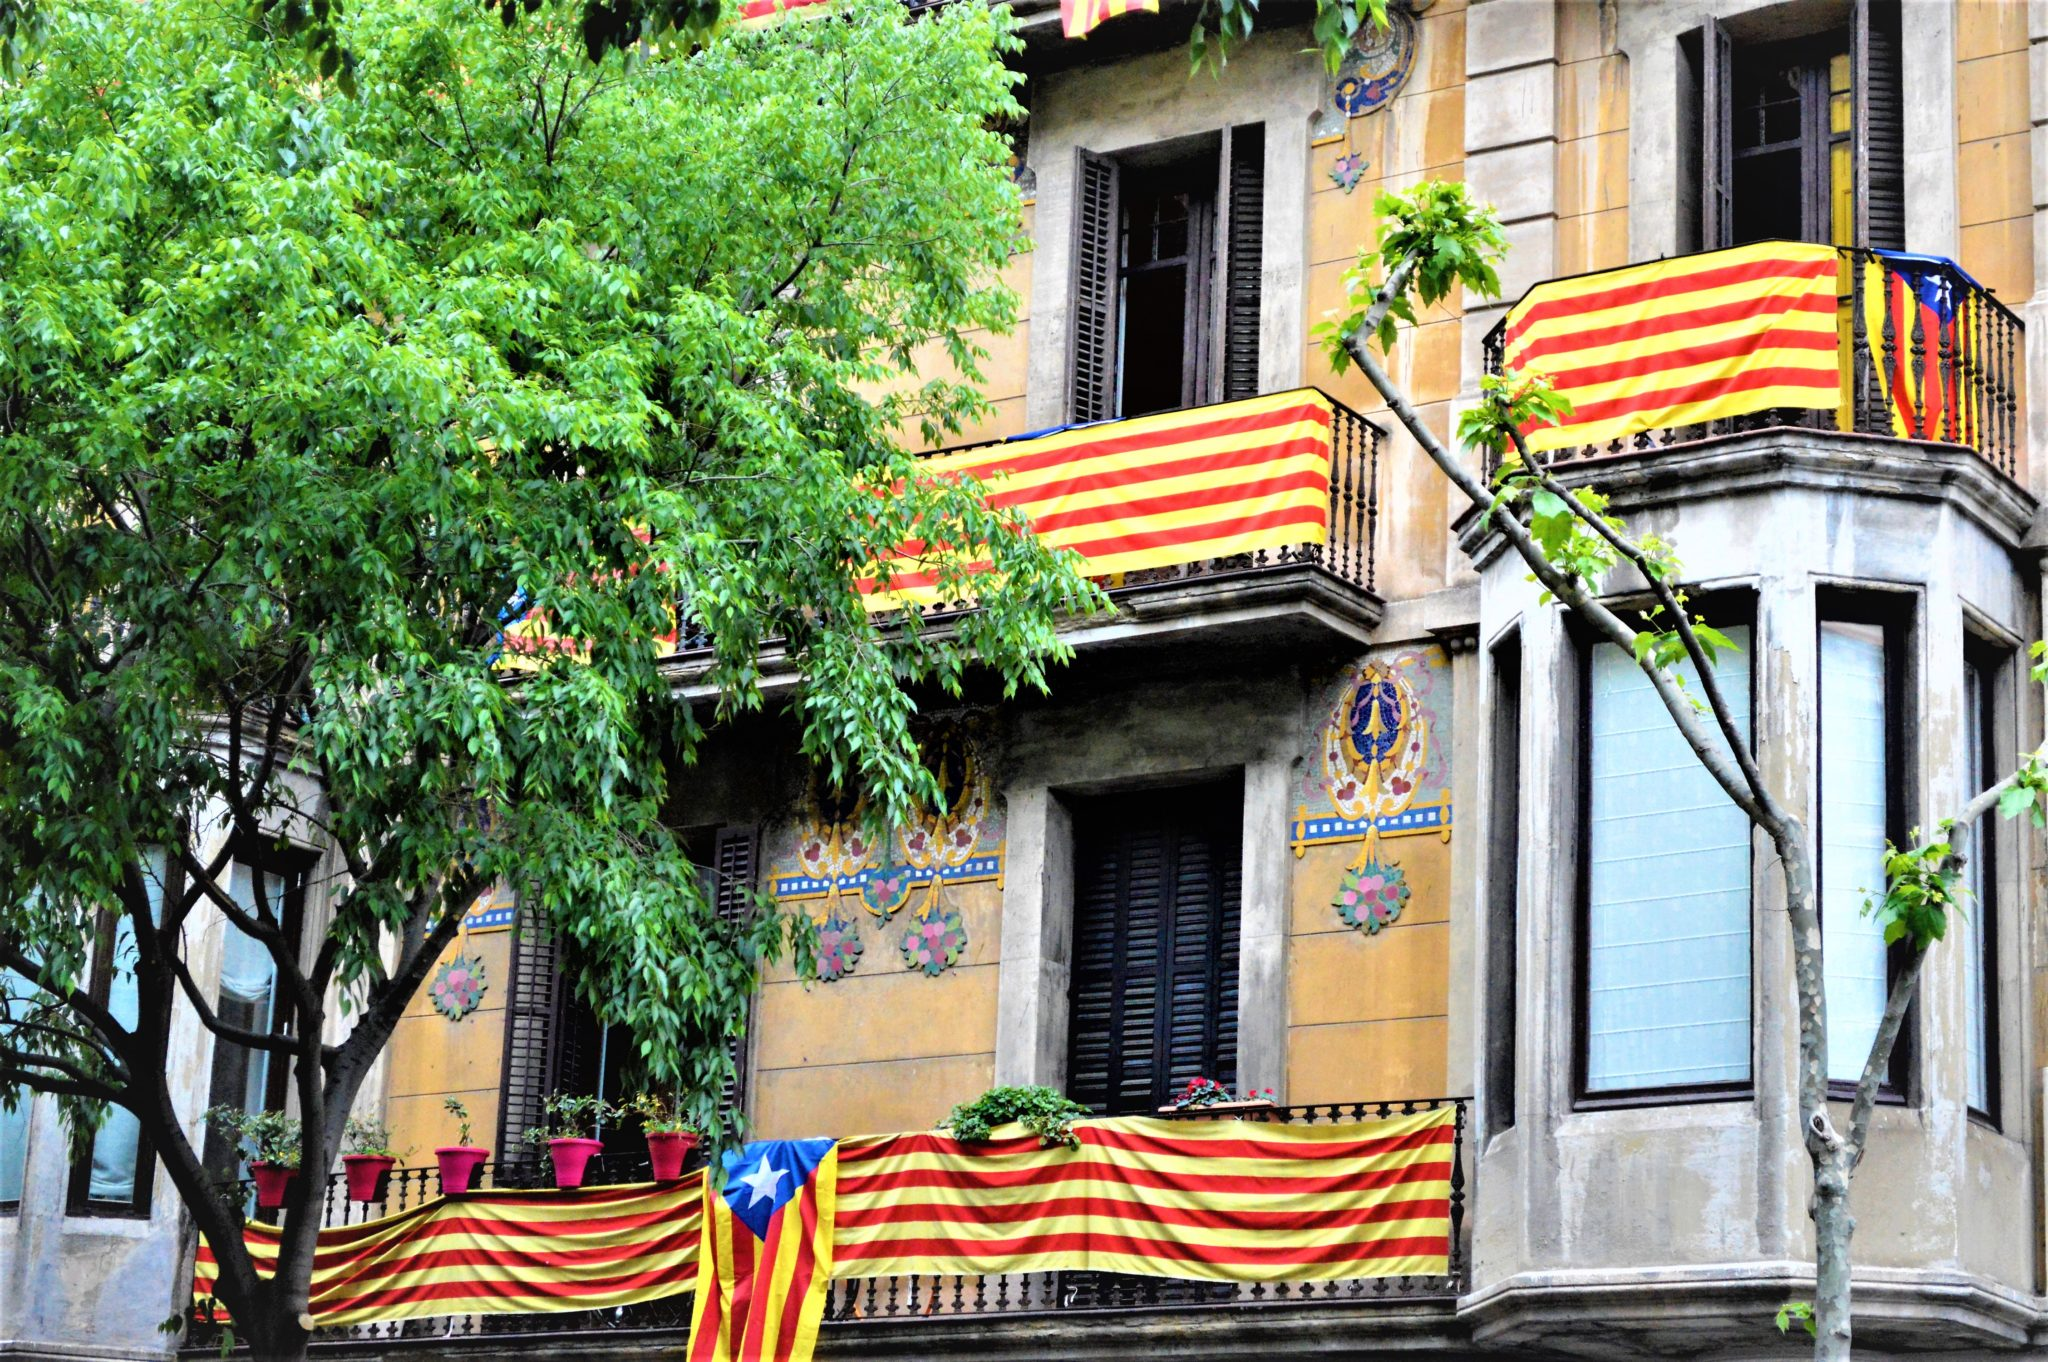 Barcelona homes, residences flags in windows, Spain